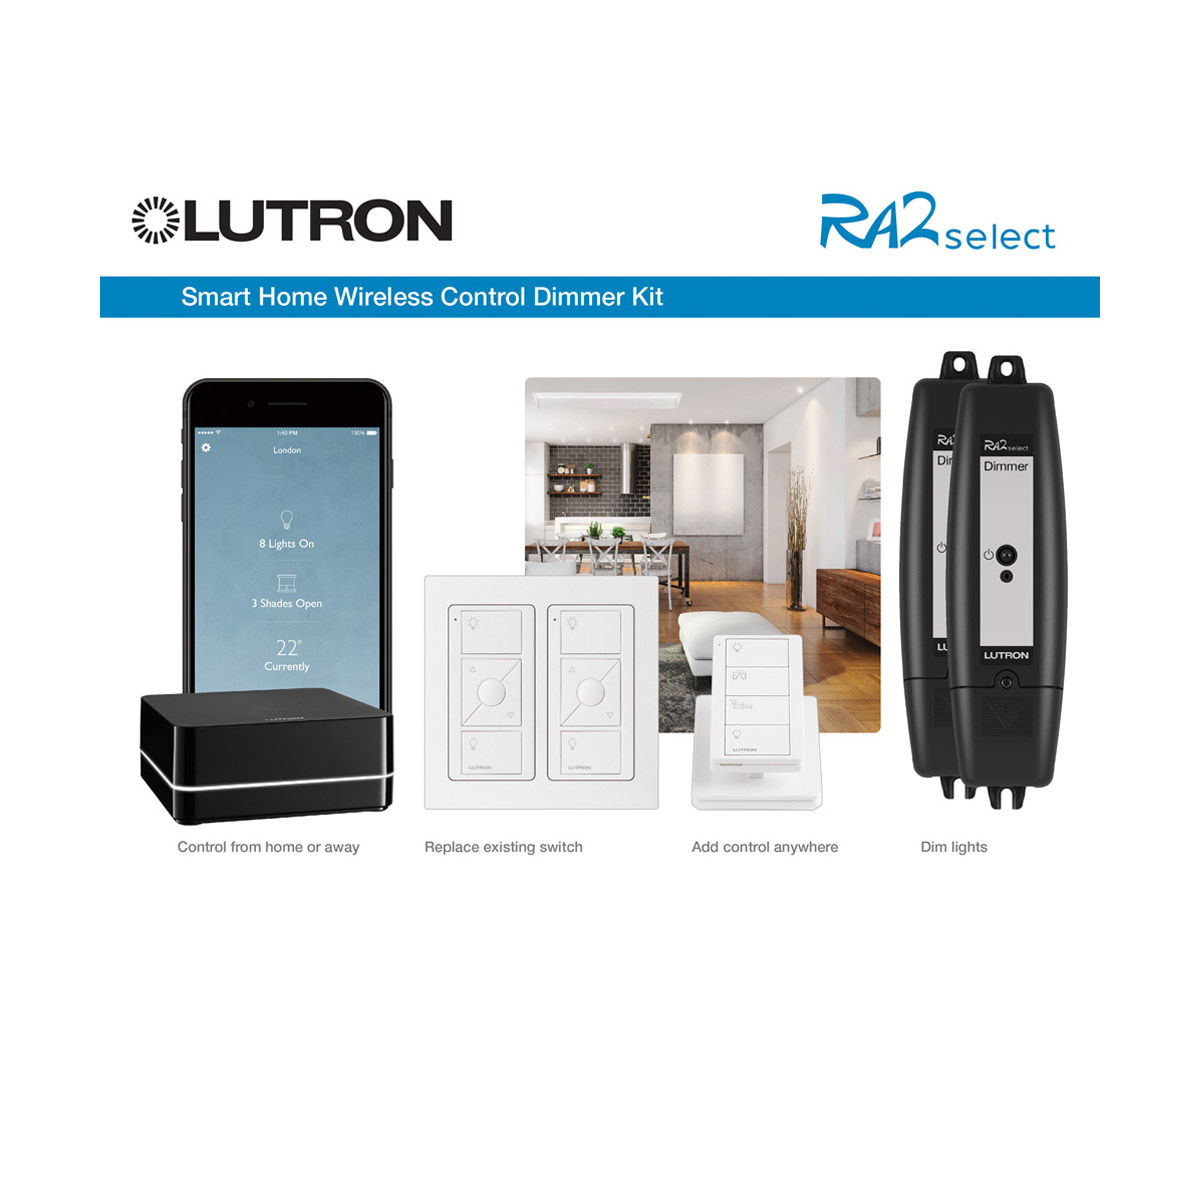 Lutron-RA2-Select-Smart-Home-Kit-RRK-KITREP-2D-2nd-image